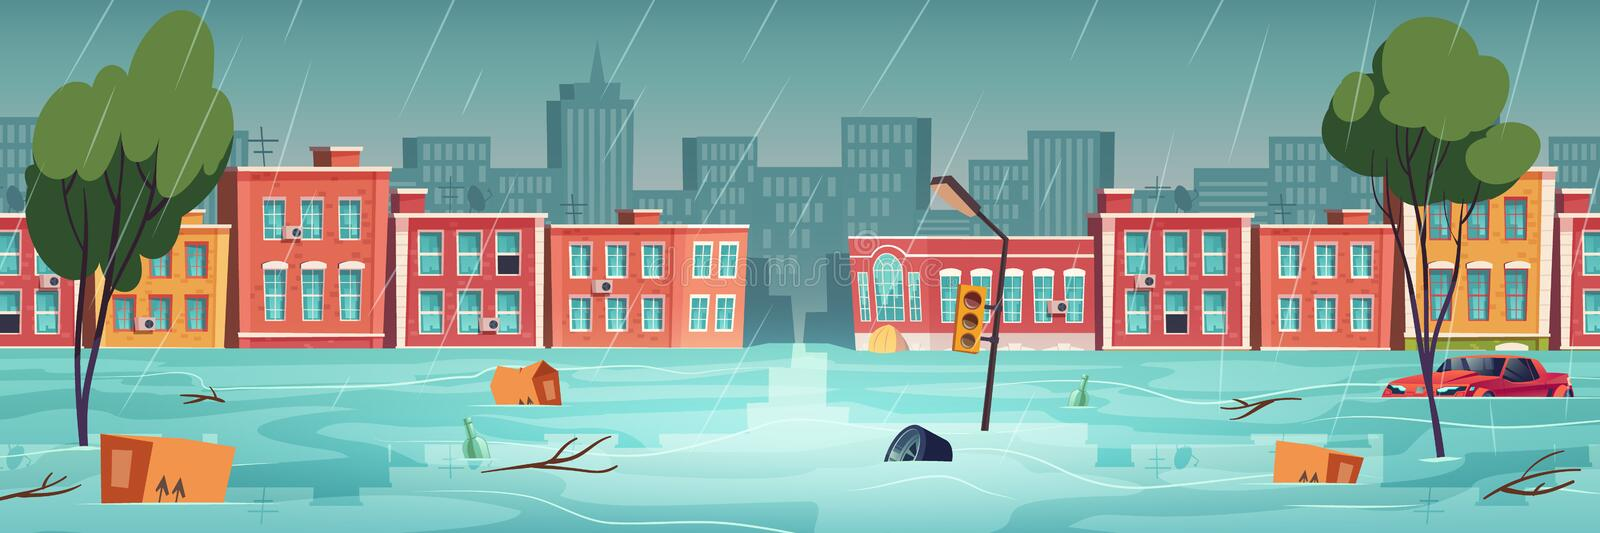 Flood in town, river, water stream on city street. Natural disaster with rainstorm. Vector cartoon illustration of urban landscape with flooded houses royalty free illustration